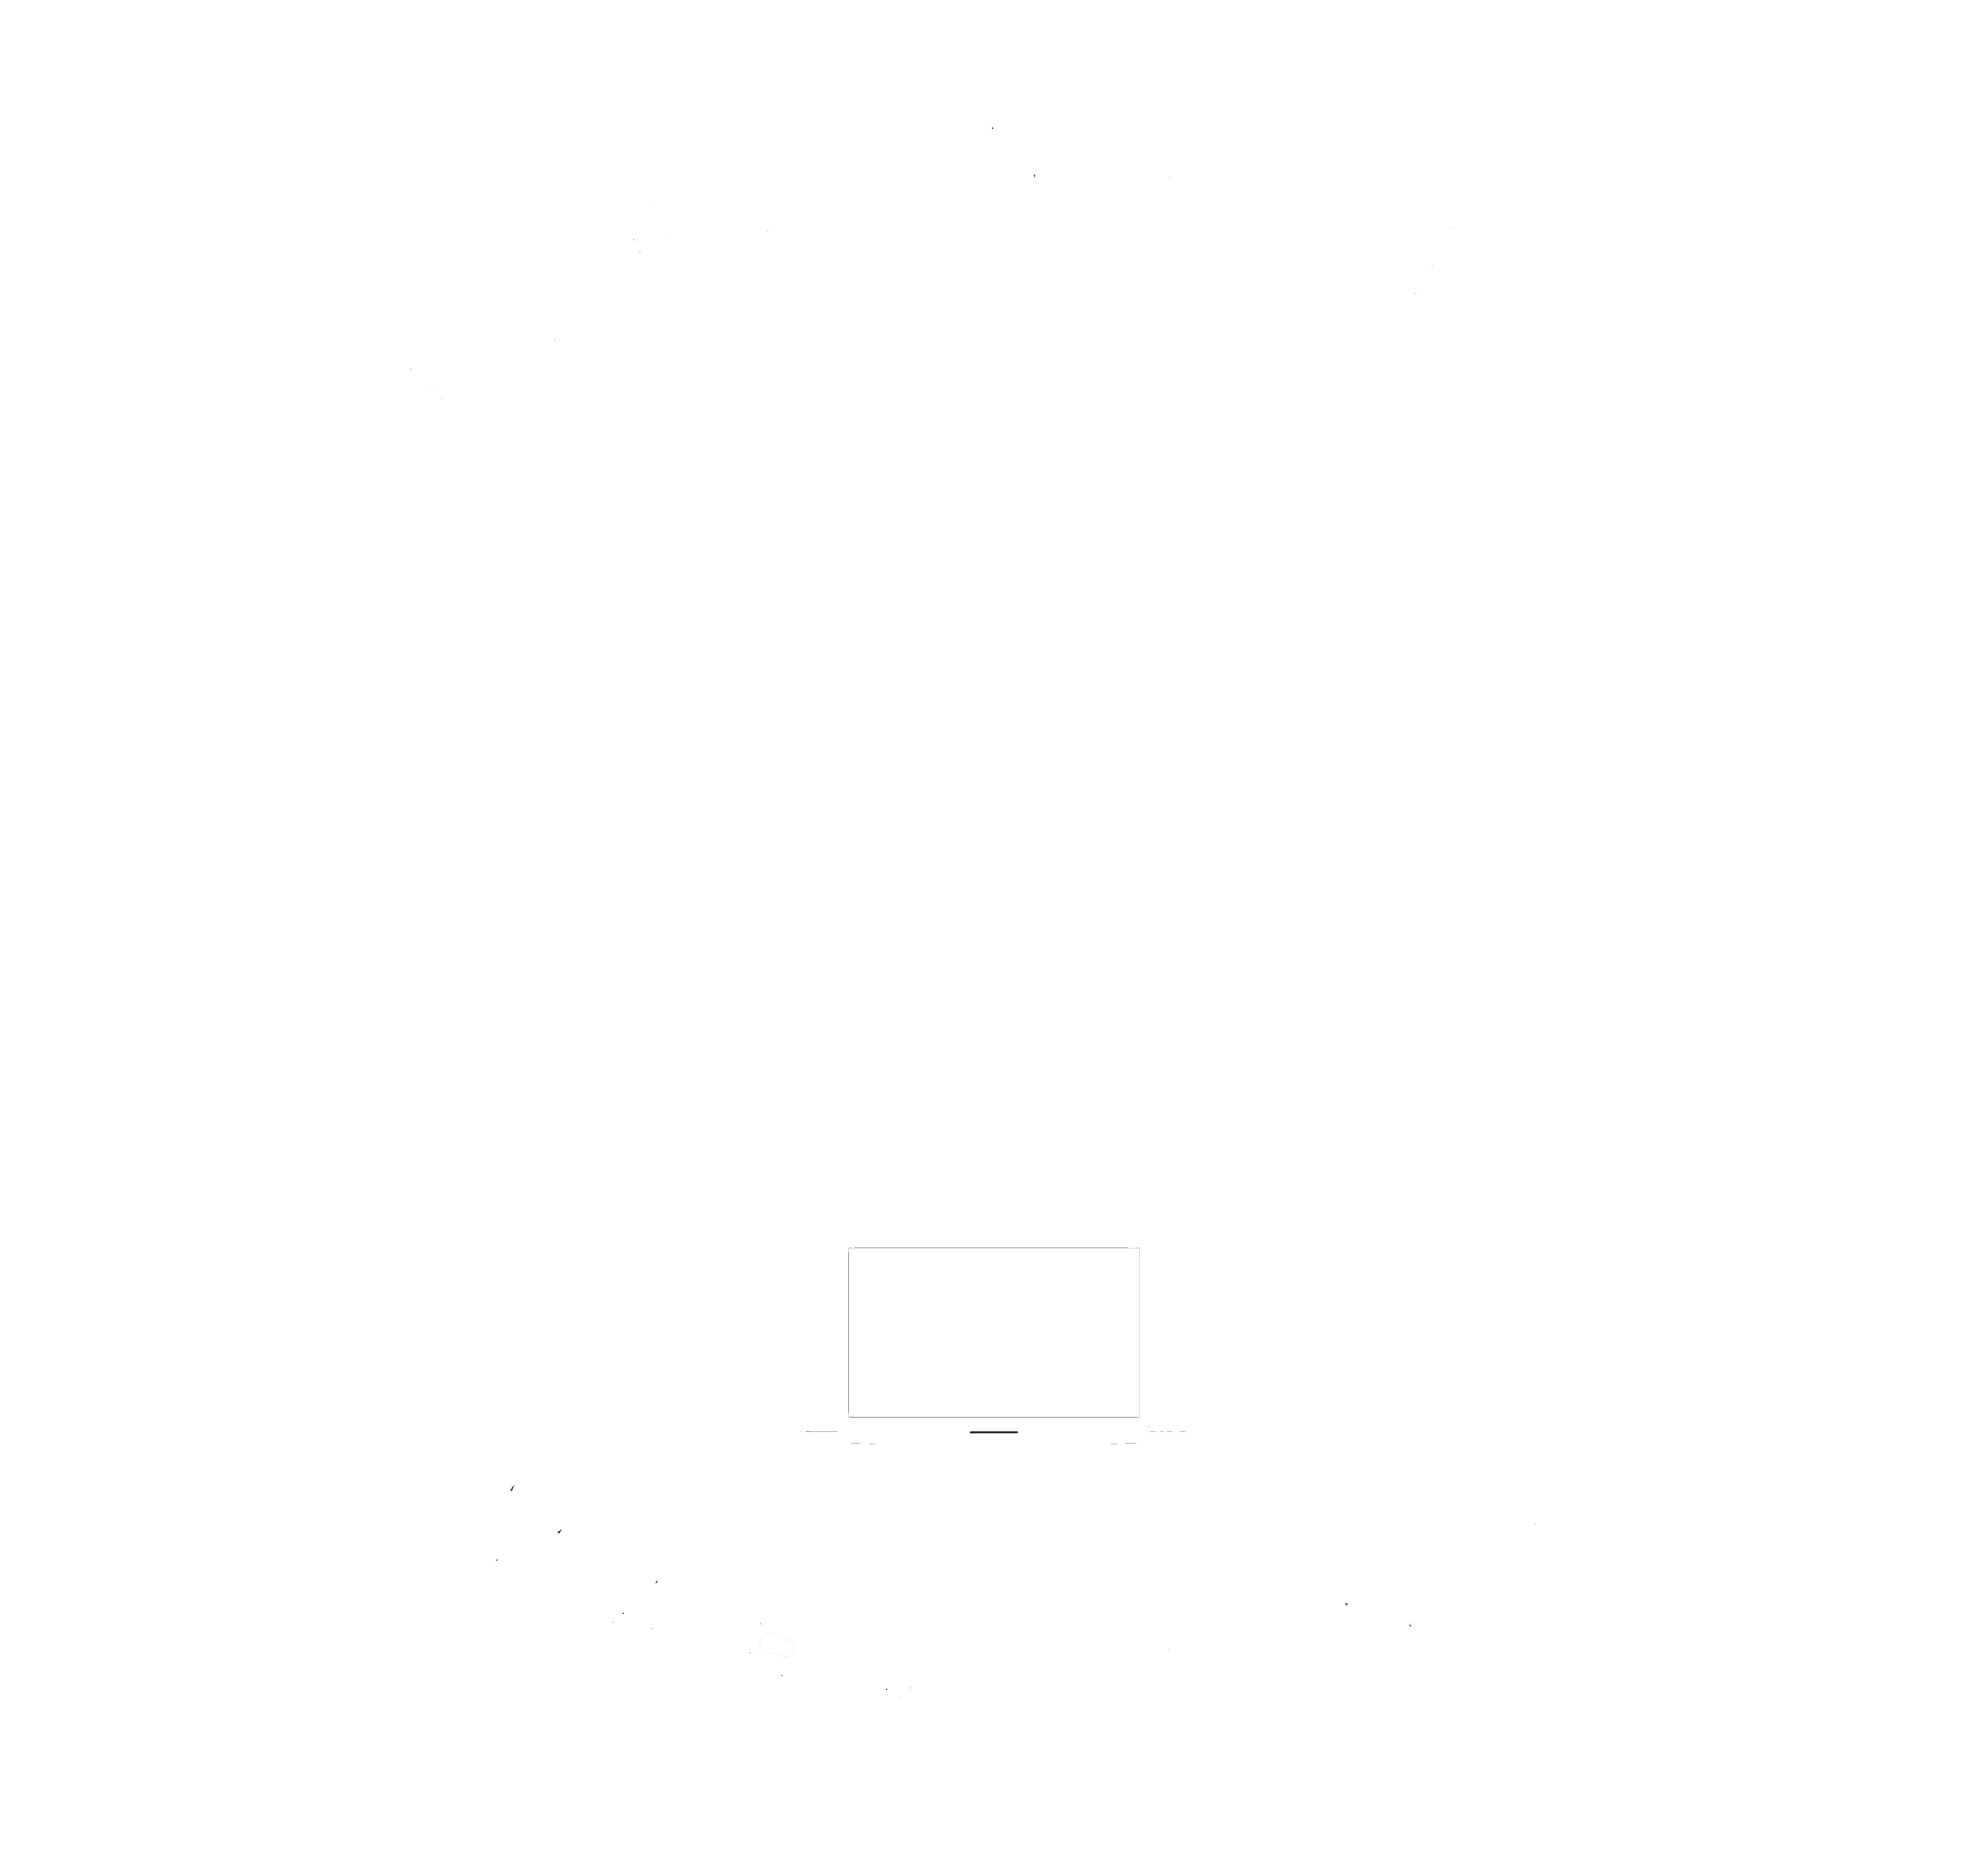 cropped logo - SEO Marketing Expert | Phil Furlong - Furlong SEO Marketing Corp.